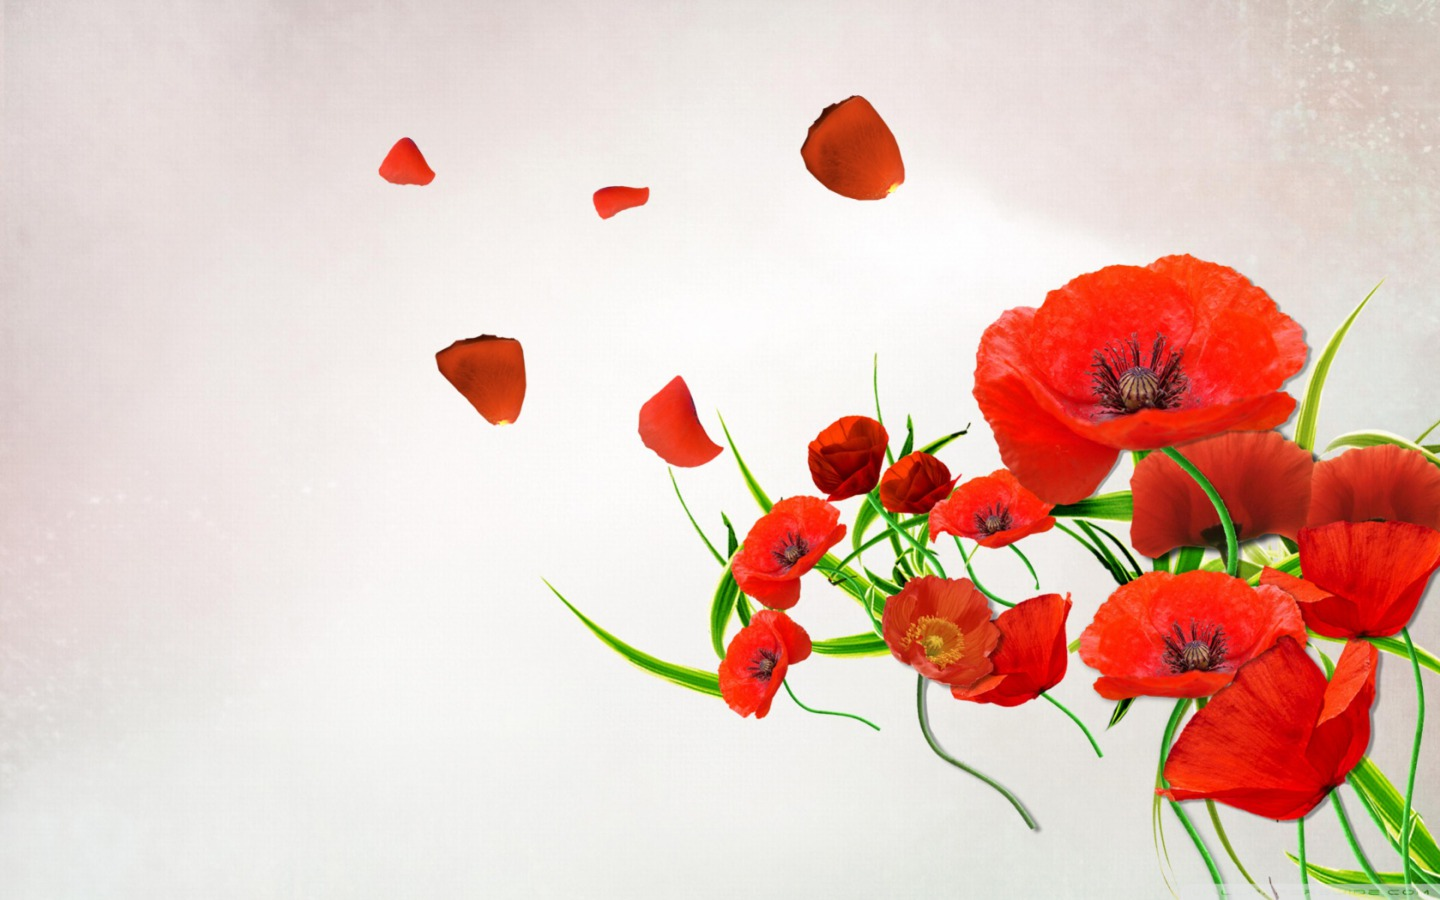 Flowers Images Poppy Hd Wallpaper And Background Photos 33551633